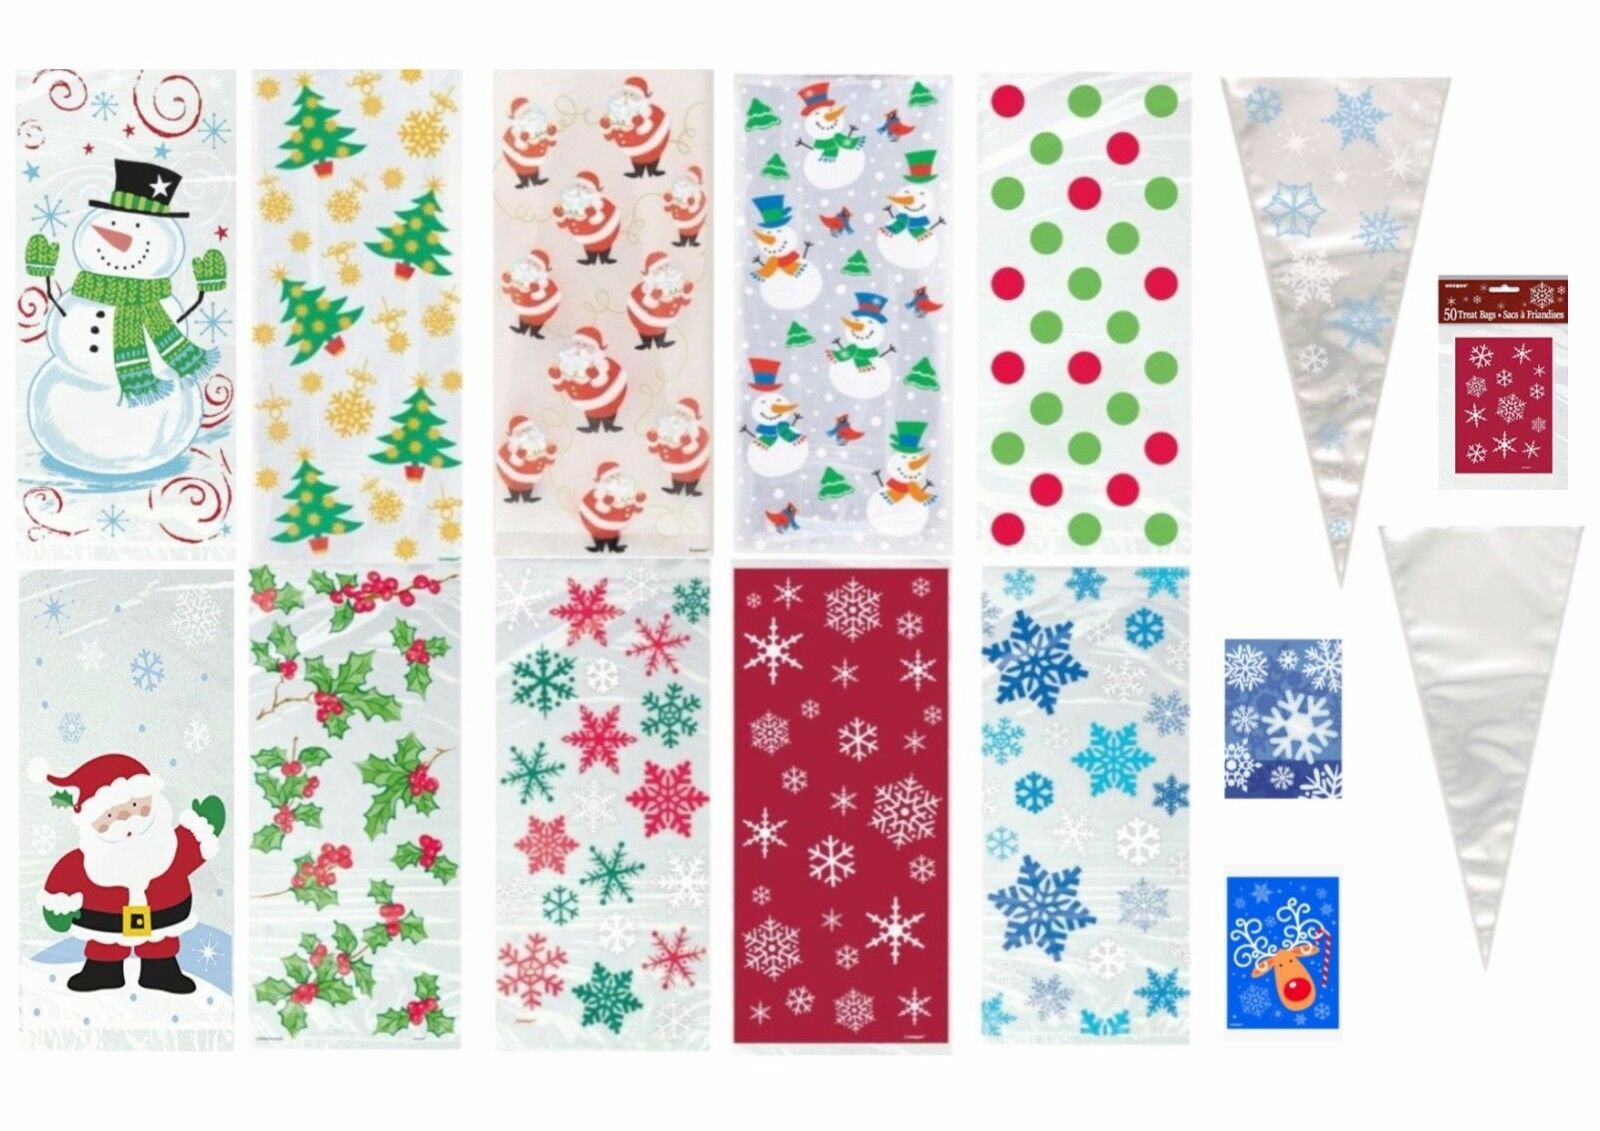 20 BLUE SNOWFLAKES Christmas Frozen Party Cello Cellophane Sweet Childrens Bags